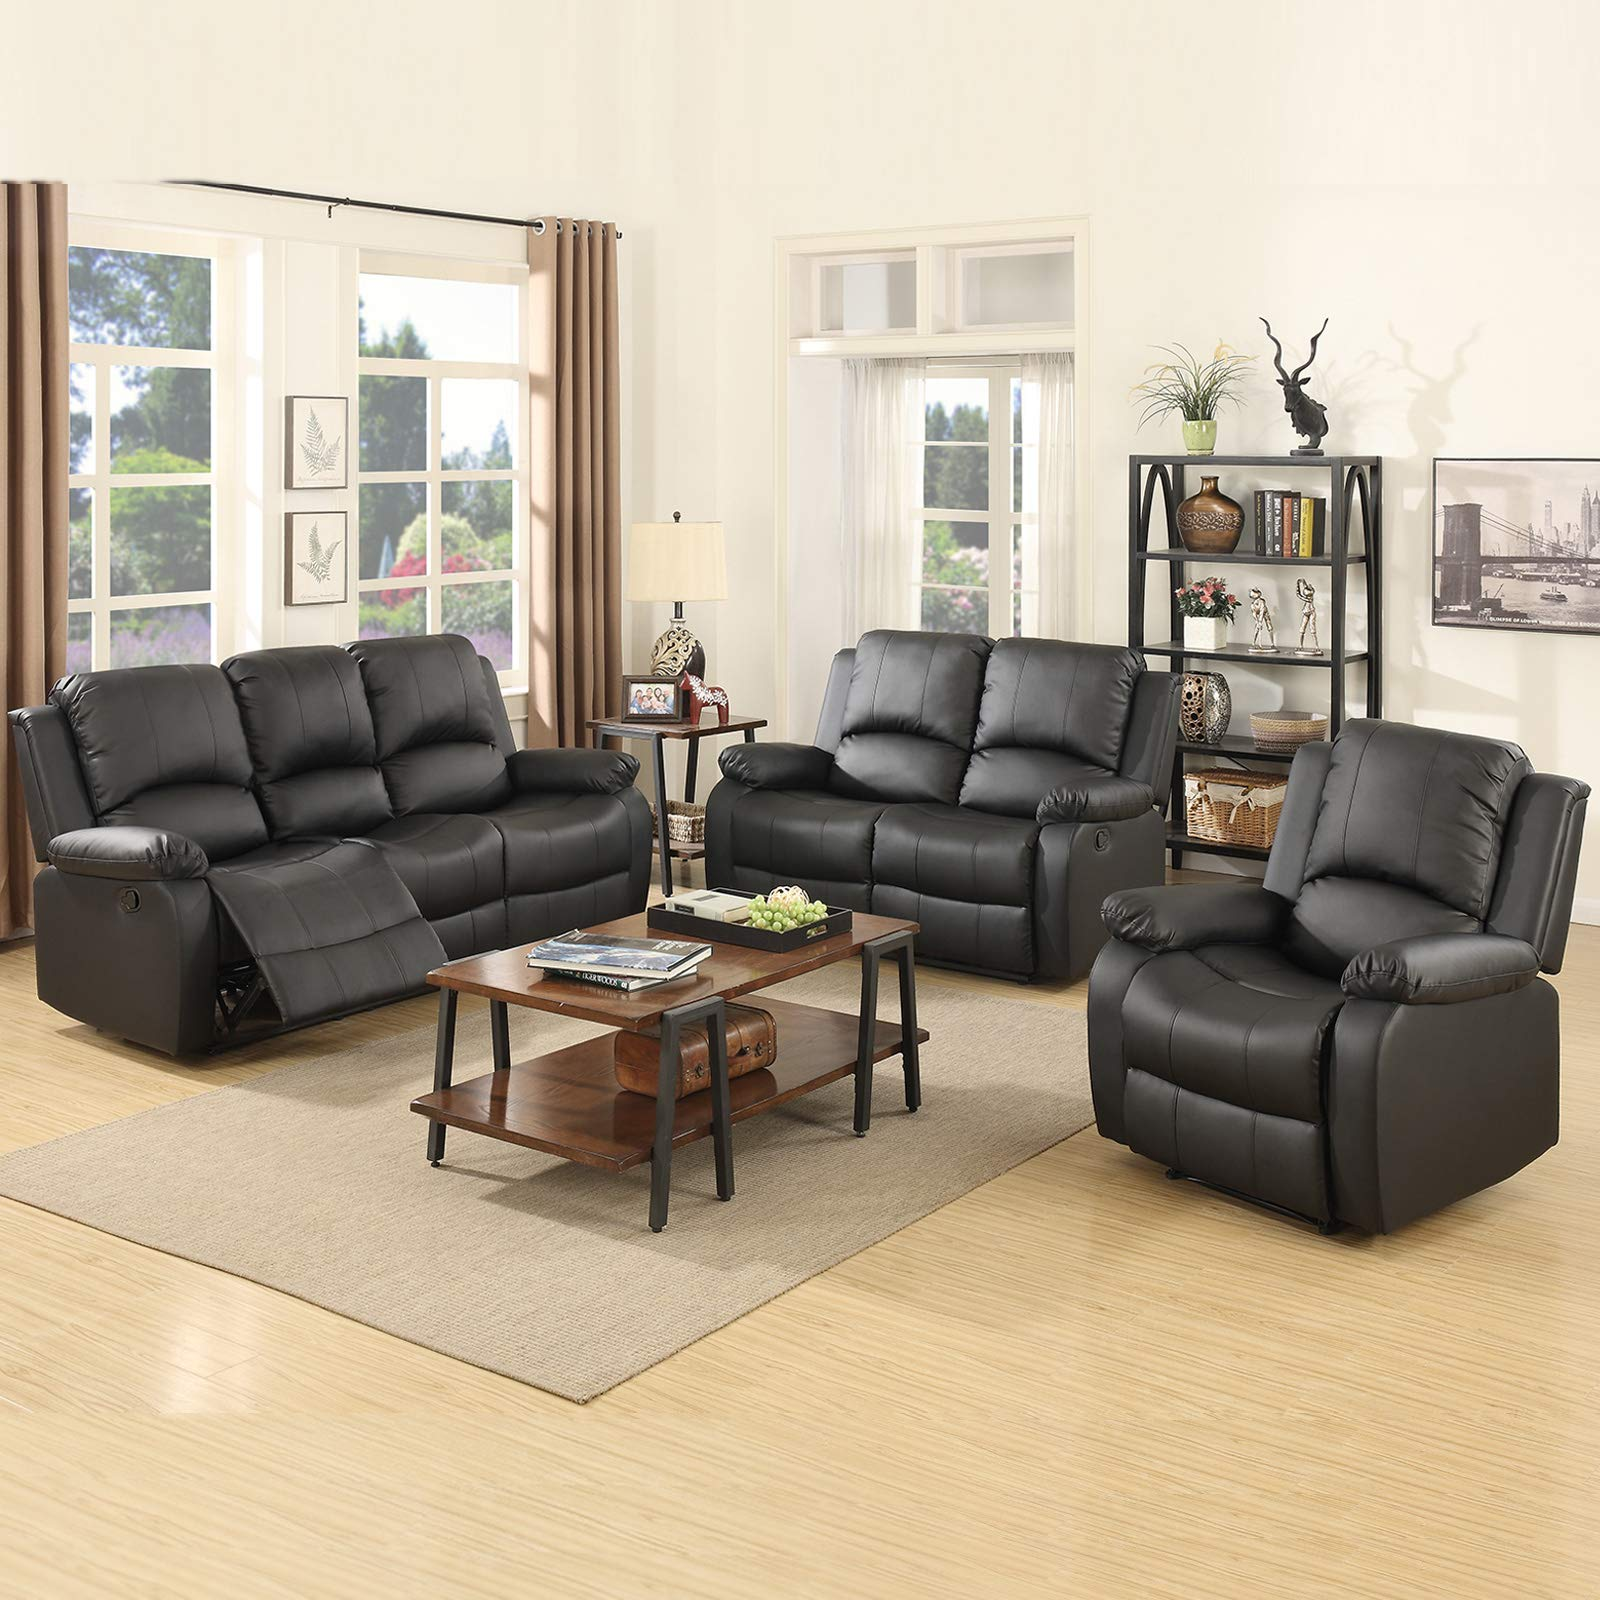 mecor 3 Piece Sofa Set Bonded Leather Motion Sofa Reclining Sofa Chair Living Room Furniture with 3-Seat Sofa, Loveseat and Recliner Chair,Black by mecor